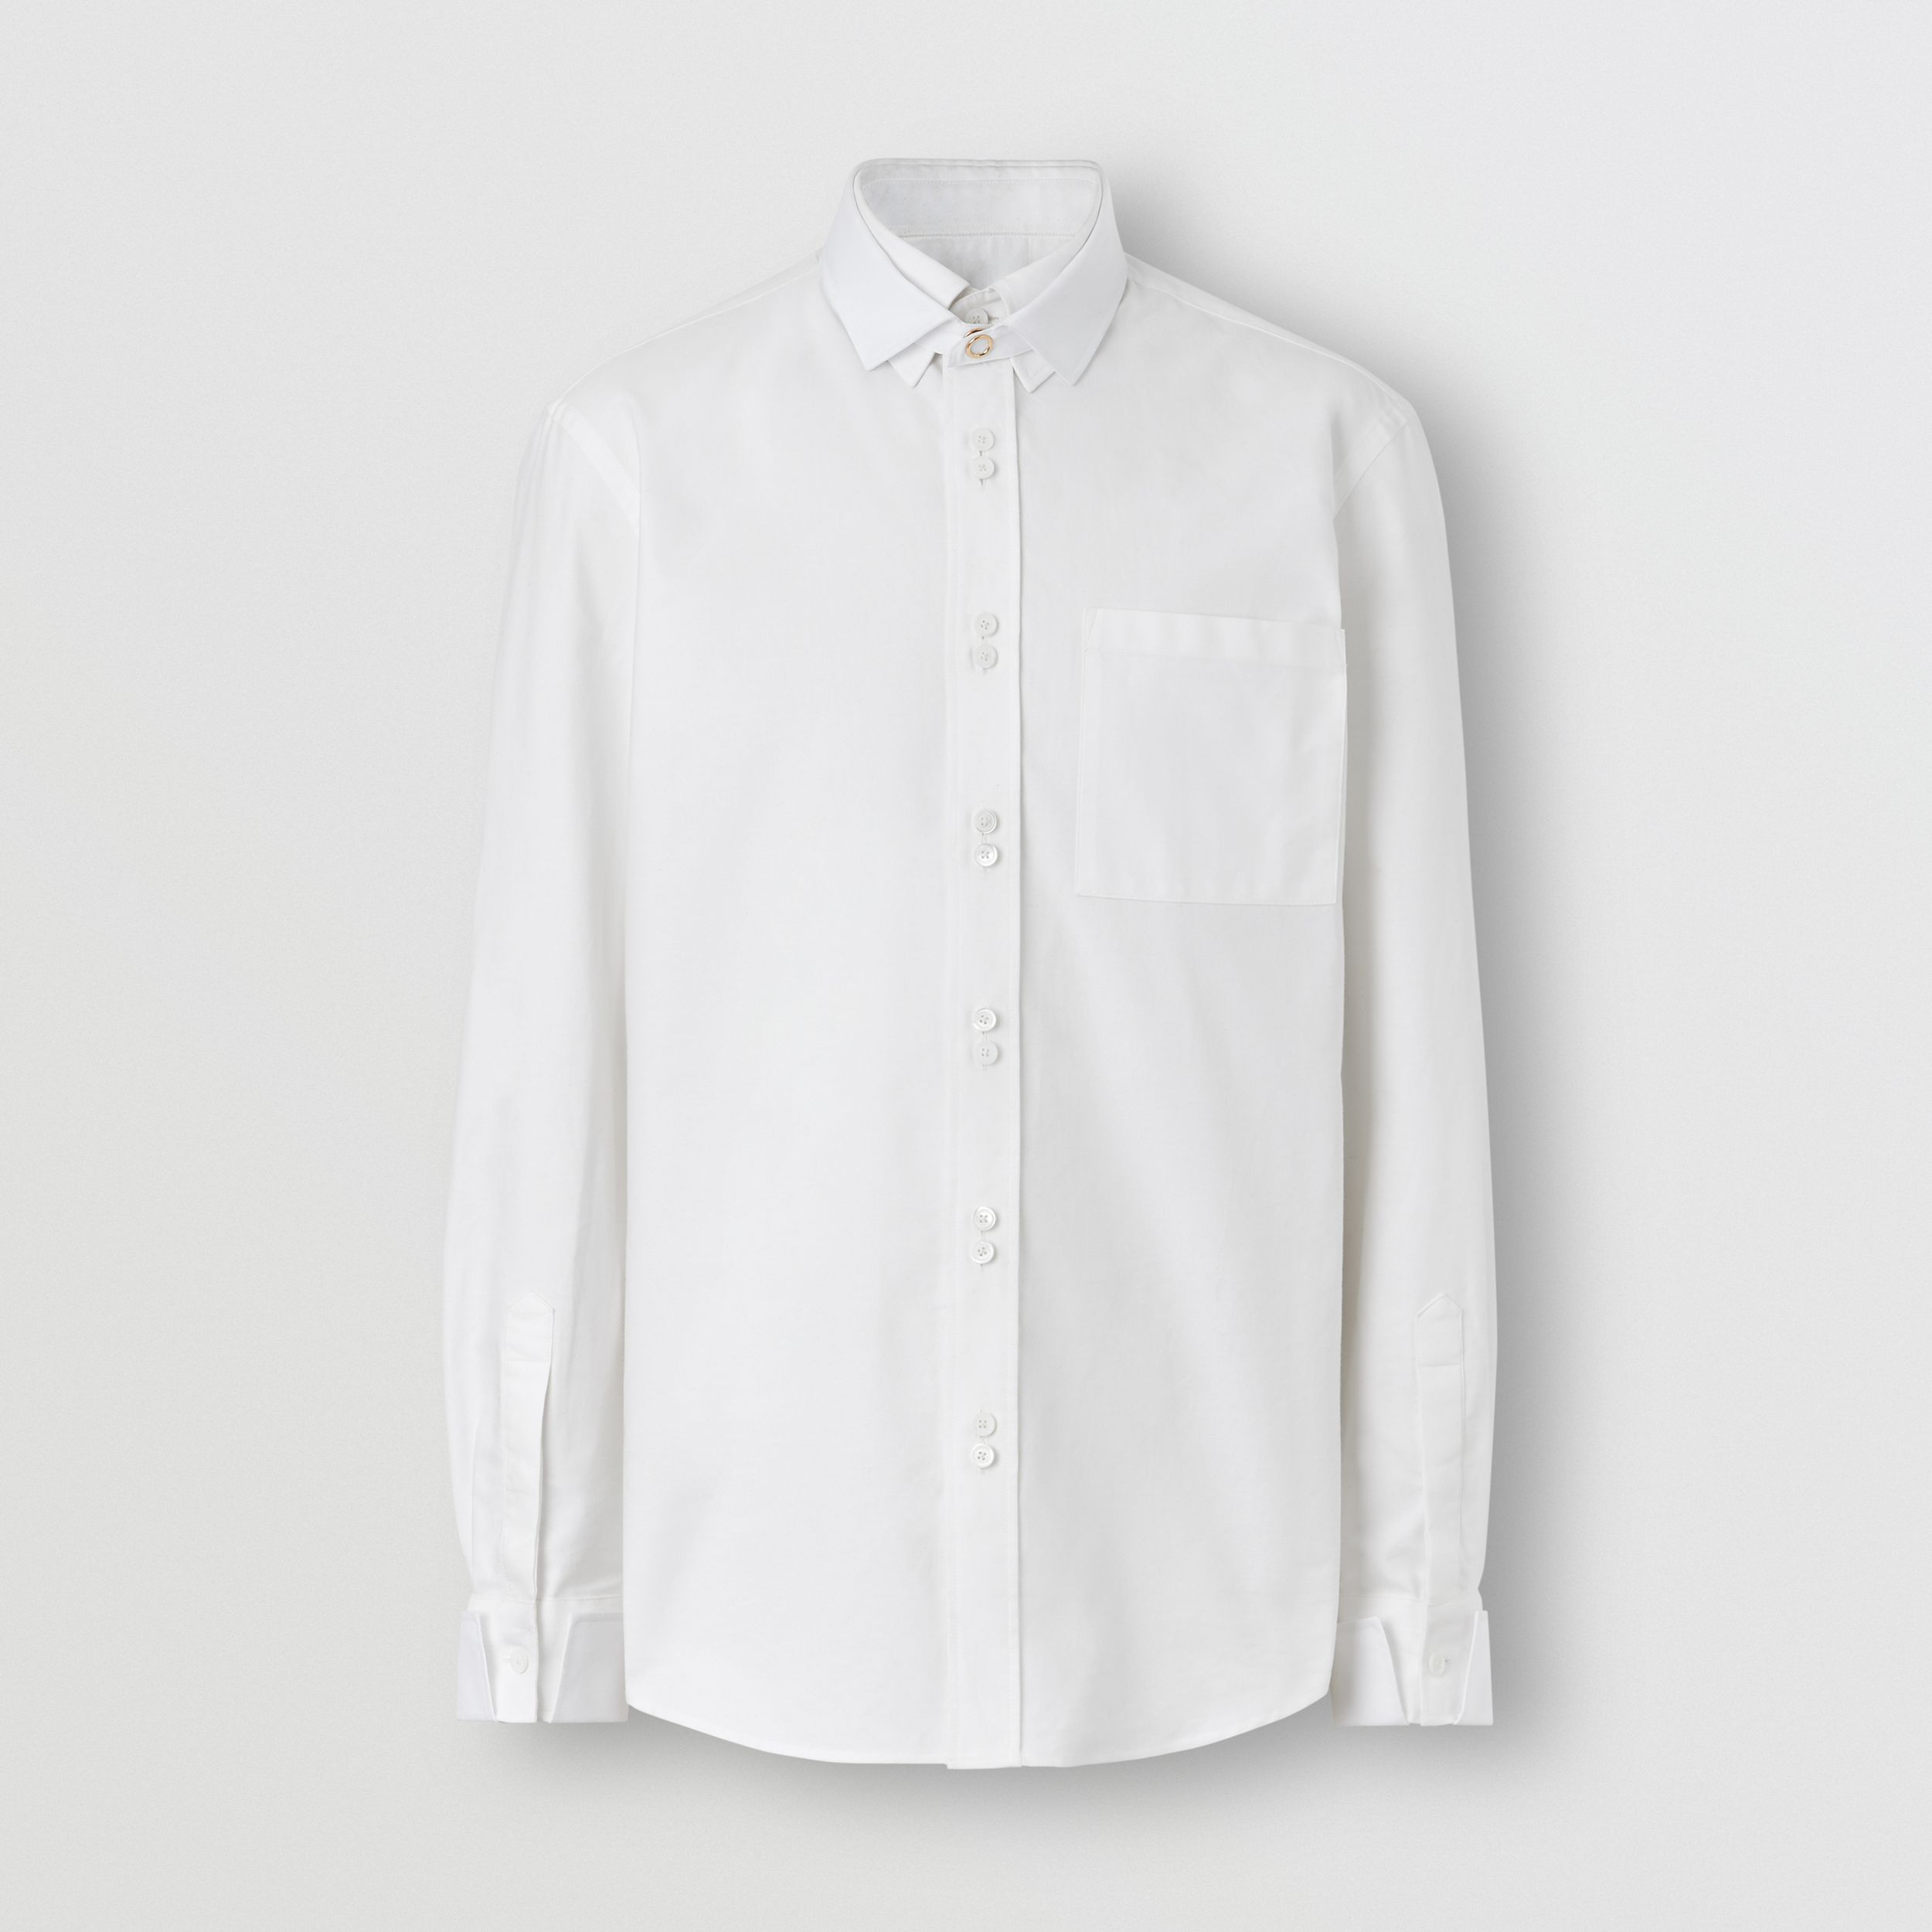 Classic Fit Detachable Collar Cotton Shirt in Optic White - Men | Burberry - 4